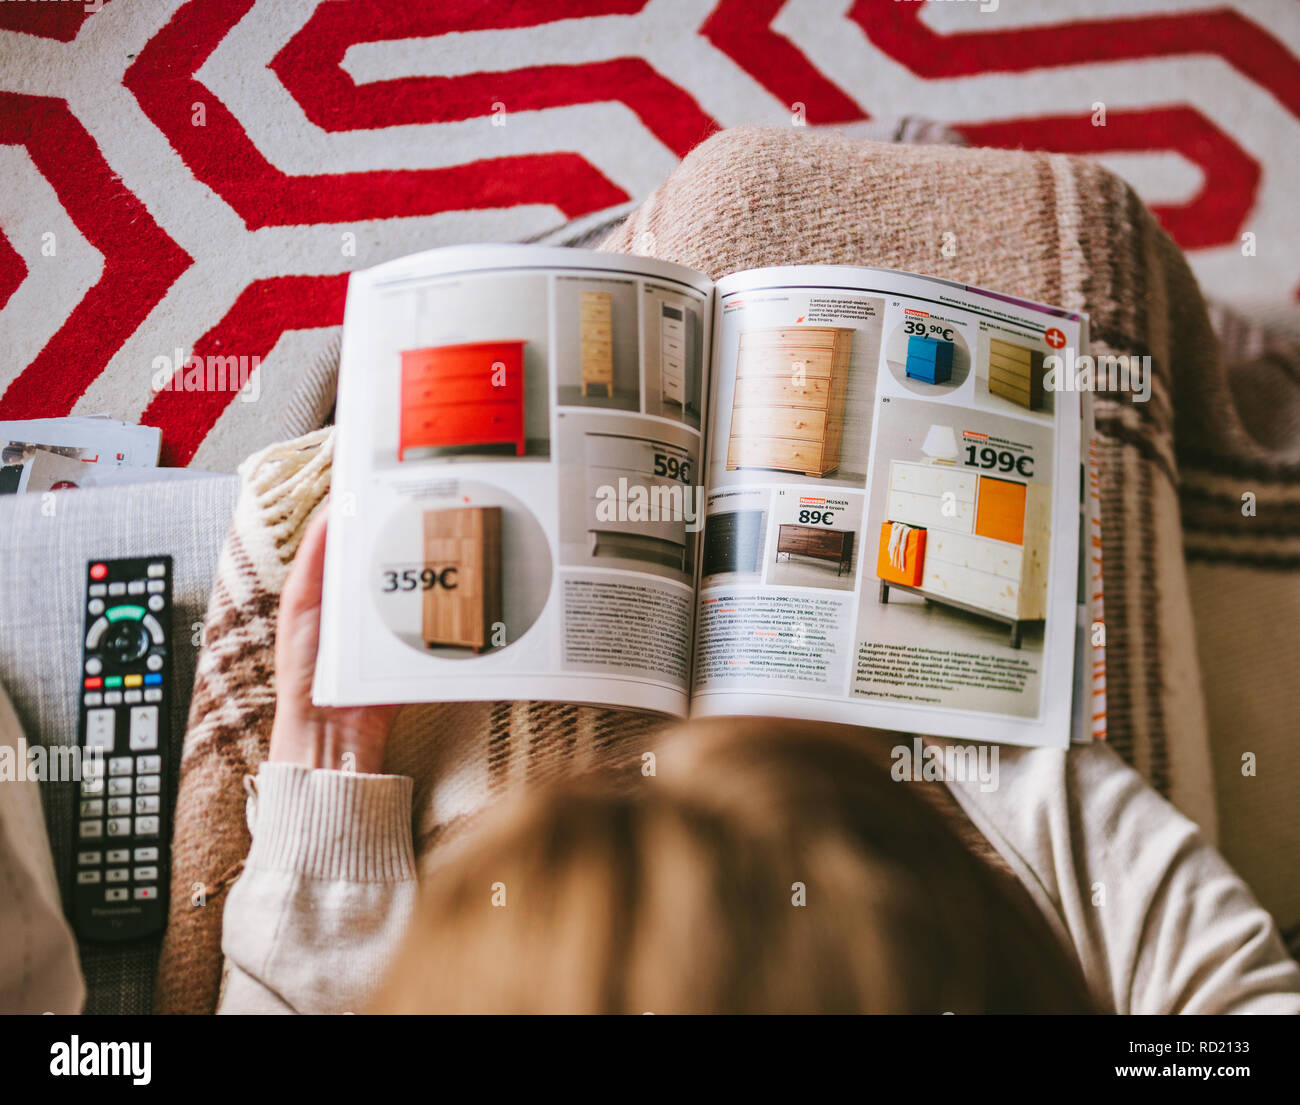 Catalogue Selling Stock Photos & Catalogue Selling Stock Images - Alamy